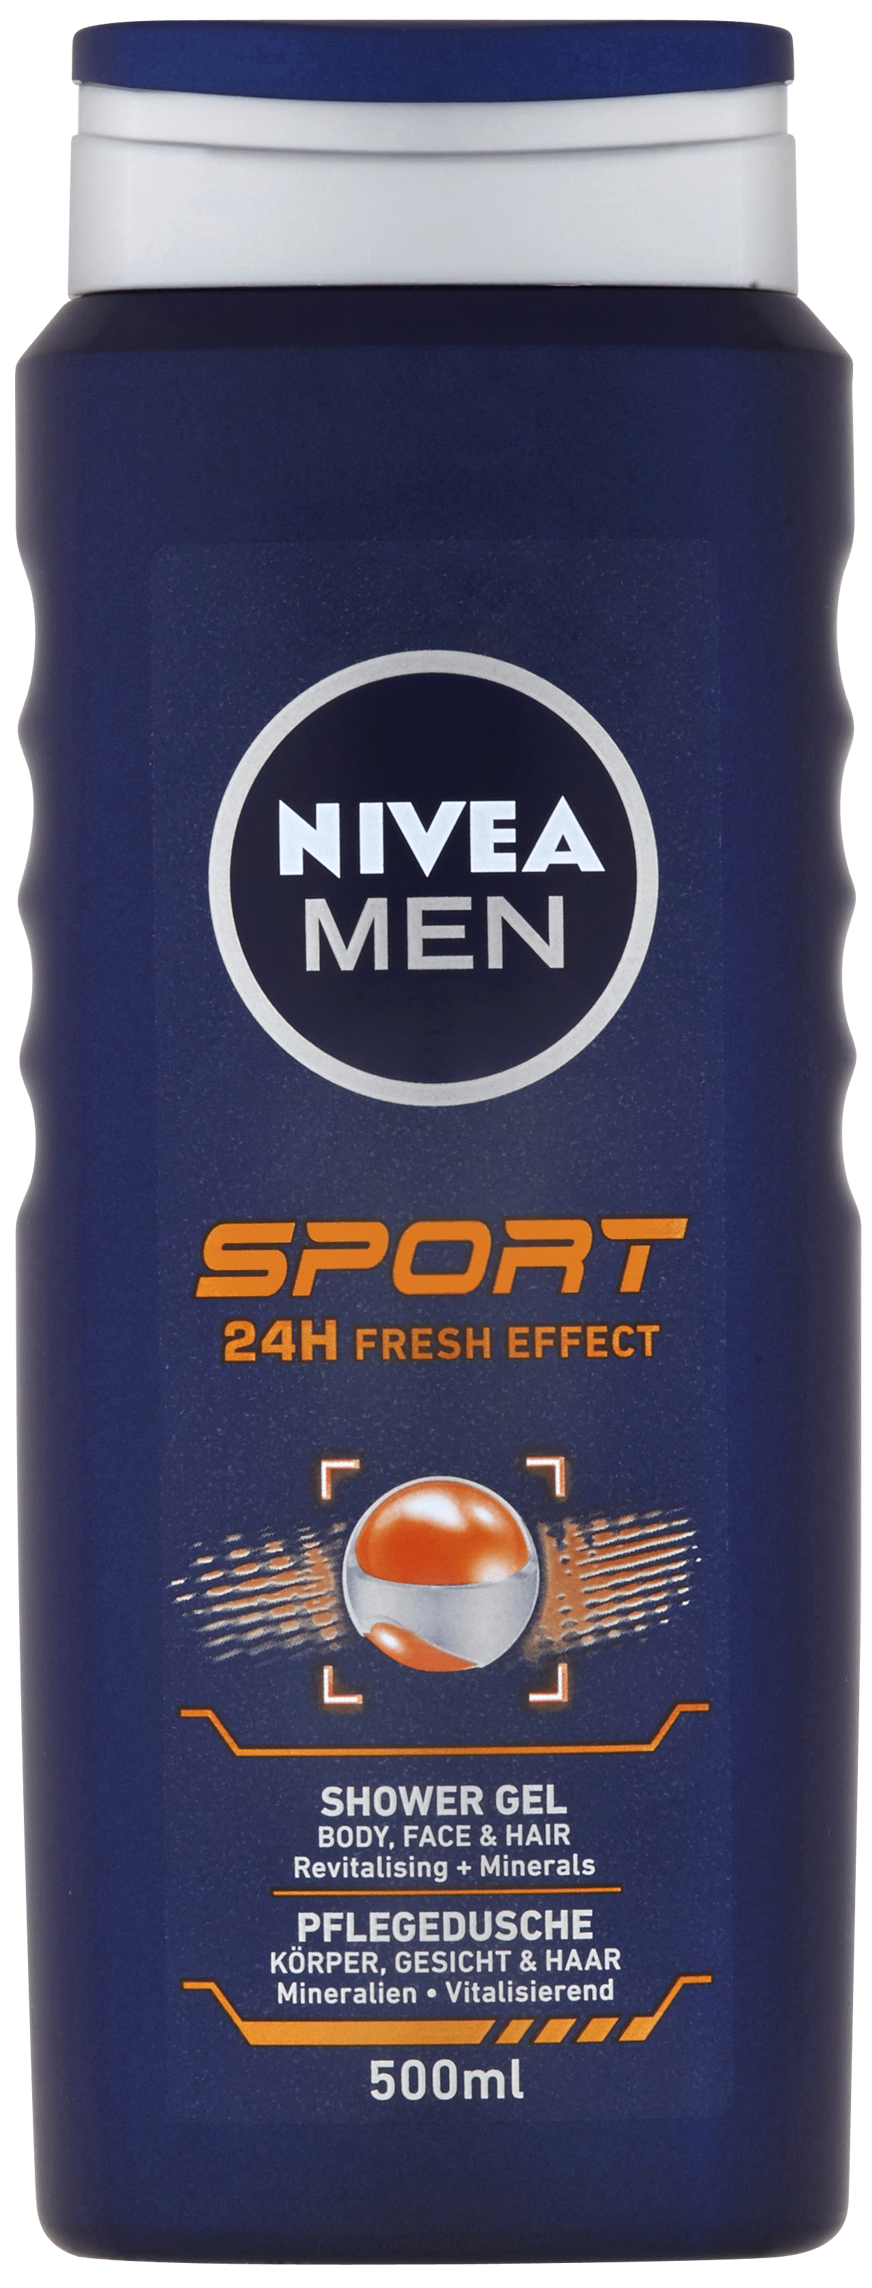 NIVEA MEN Sprchový gel Sport 500 ml